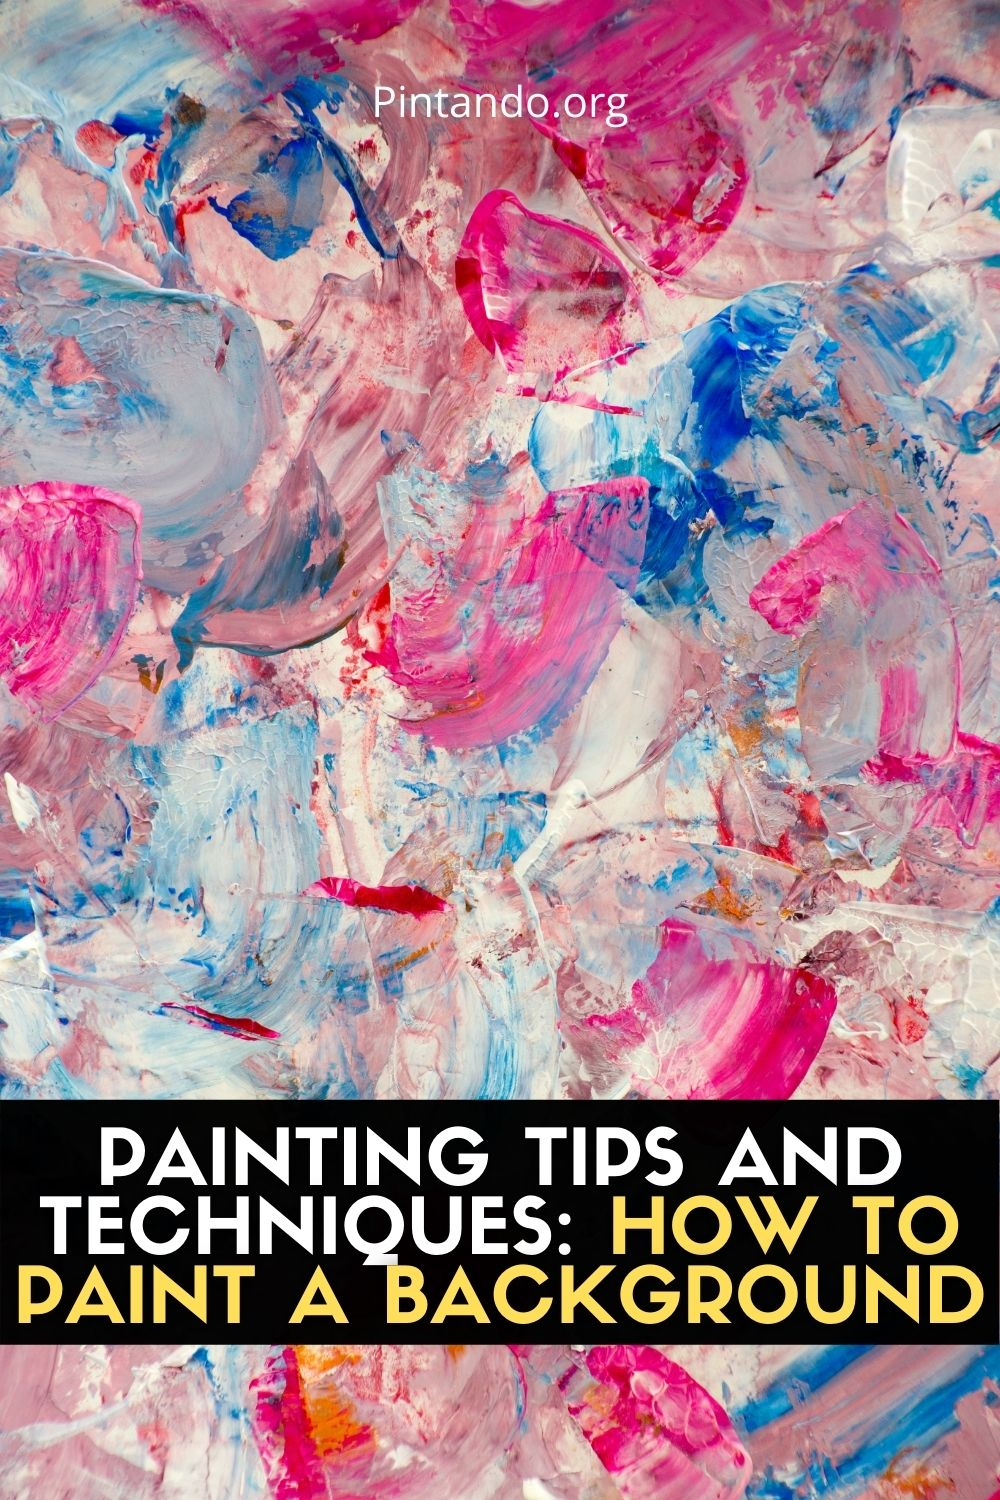 PAINTING TIPS AND TECHNIQUES HOW TO PAINT A BACKGROUND